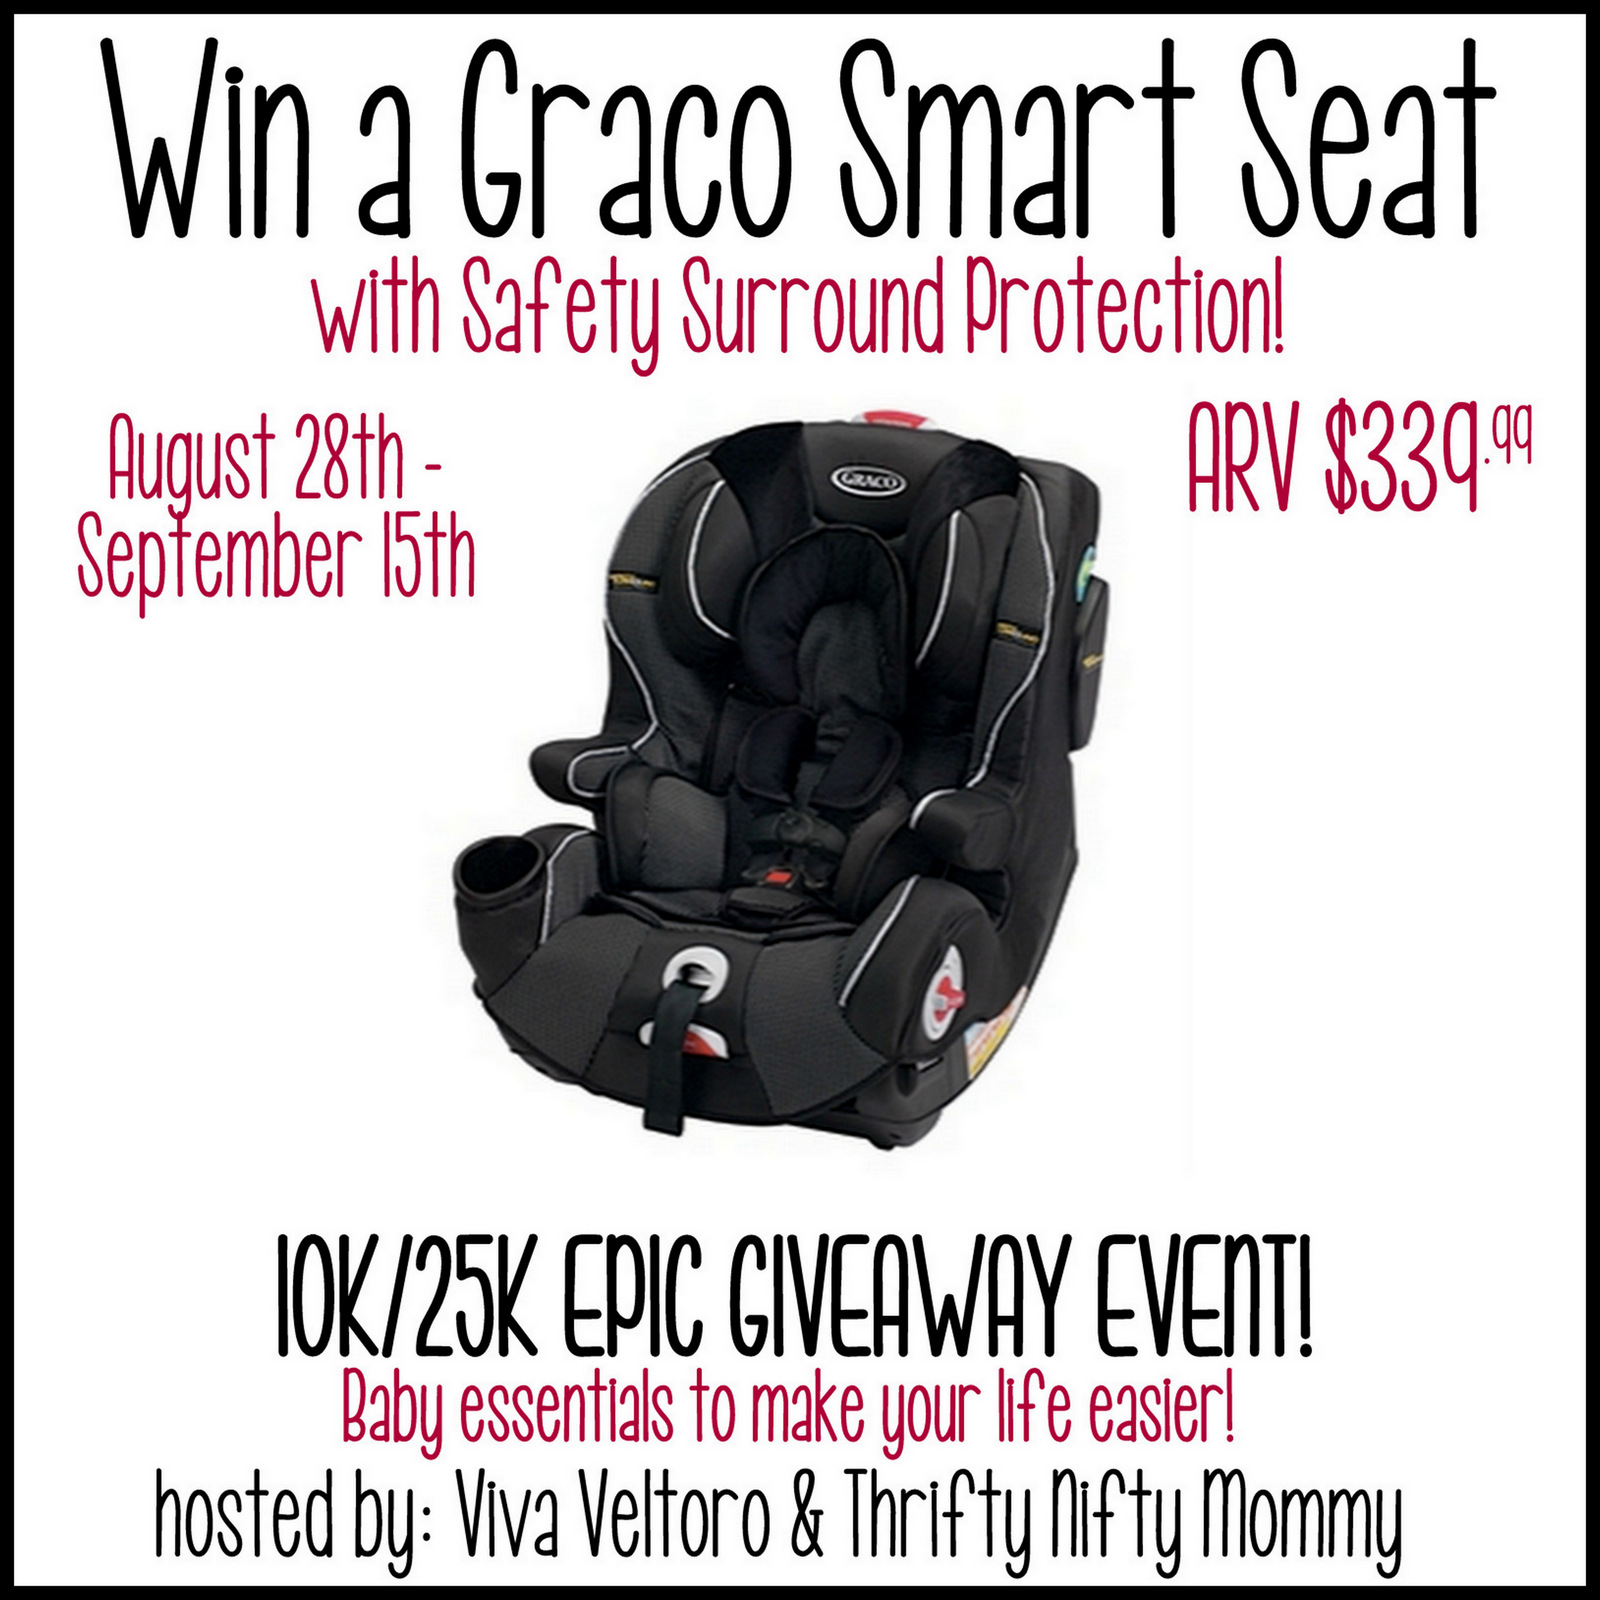 graco smart seat car seat giveaway ends 9 15. Black Bedroom Furniture Sets. Home Design Ideas